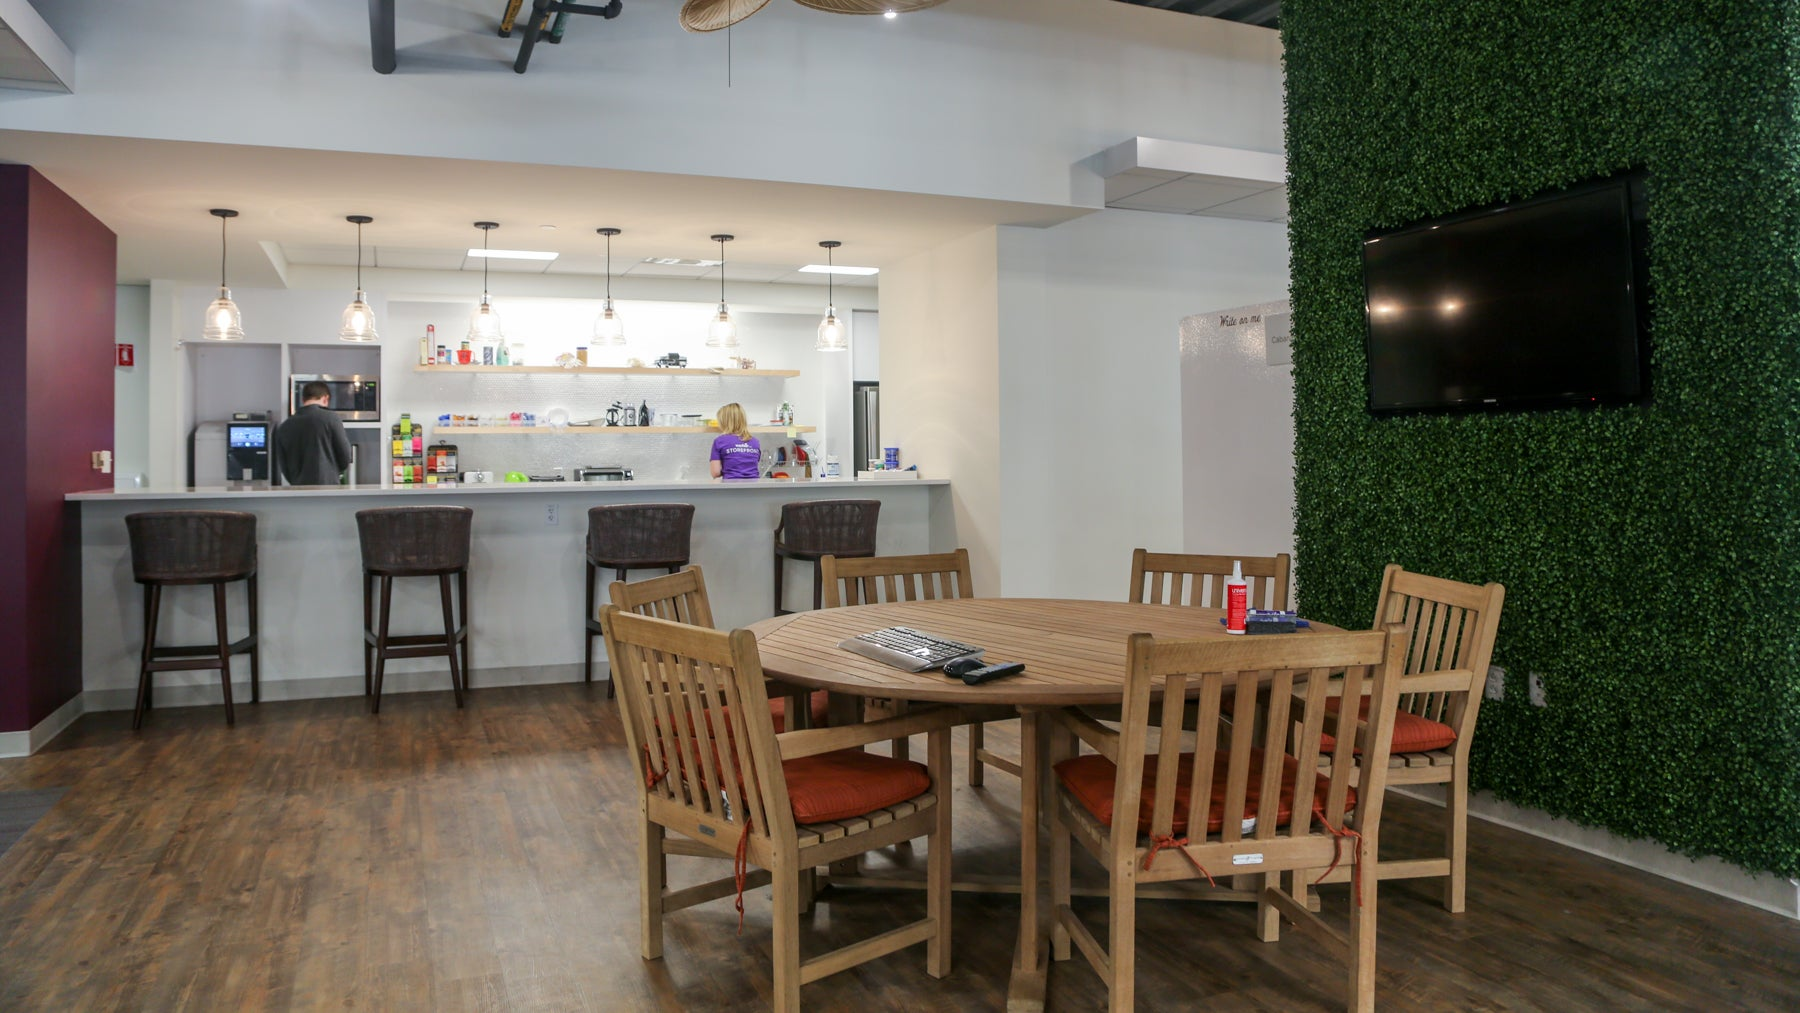 Wayfair has multiple full-sized kitchens stocked with food, drinks, and coffee.